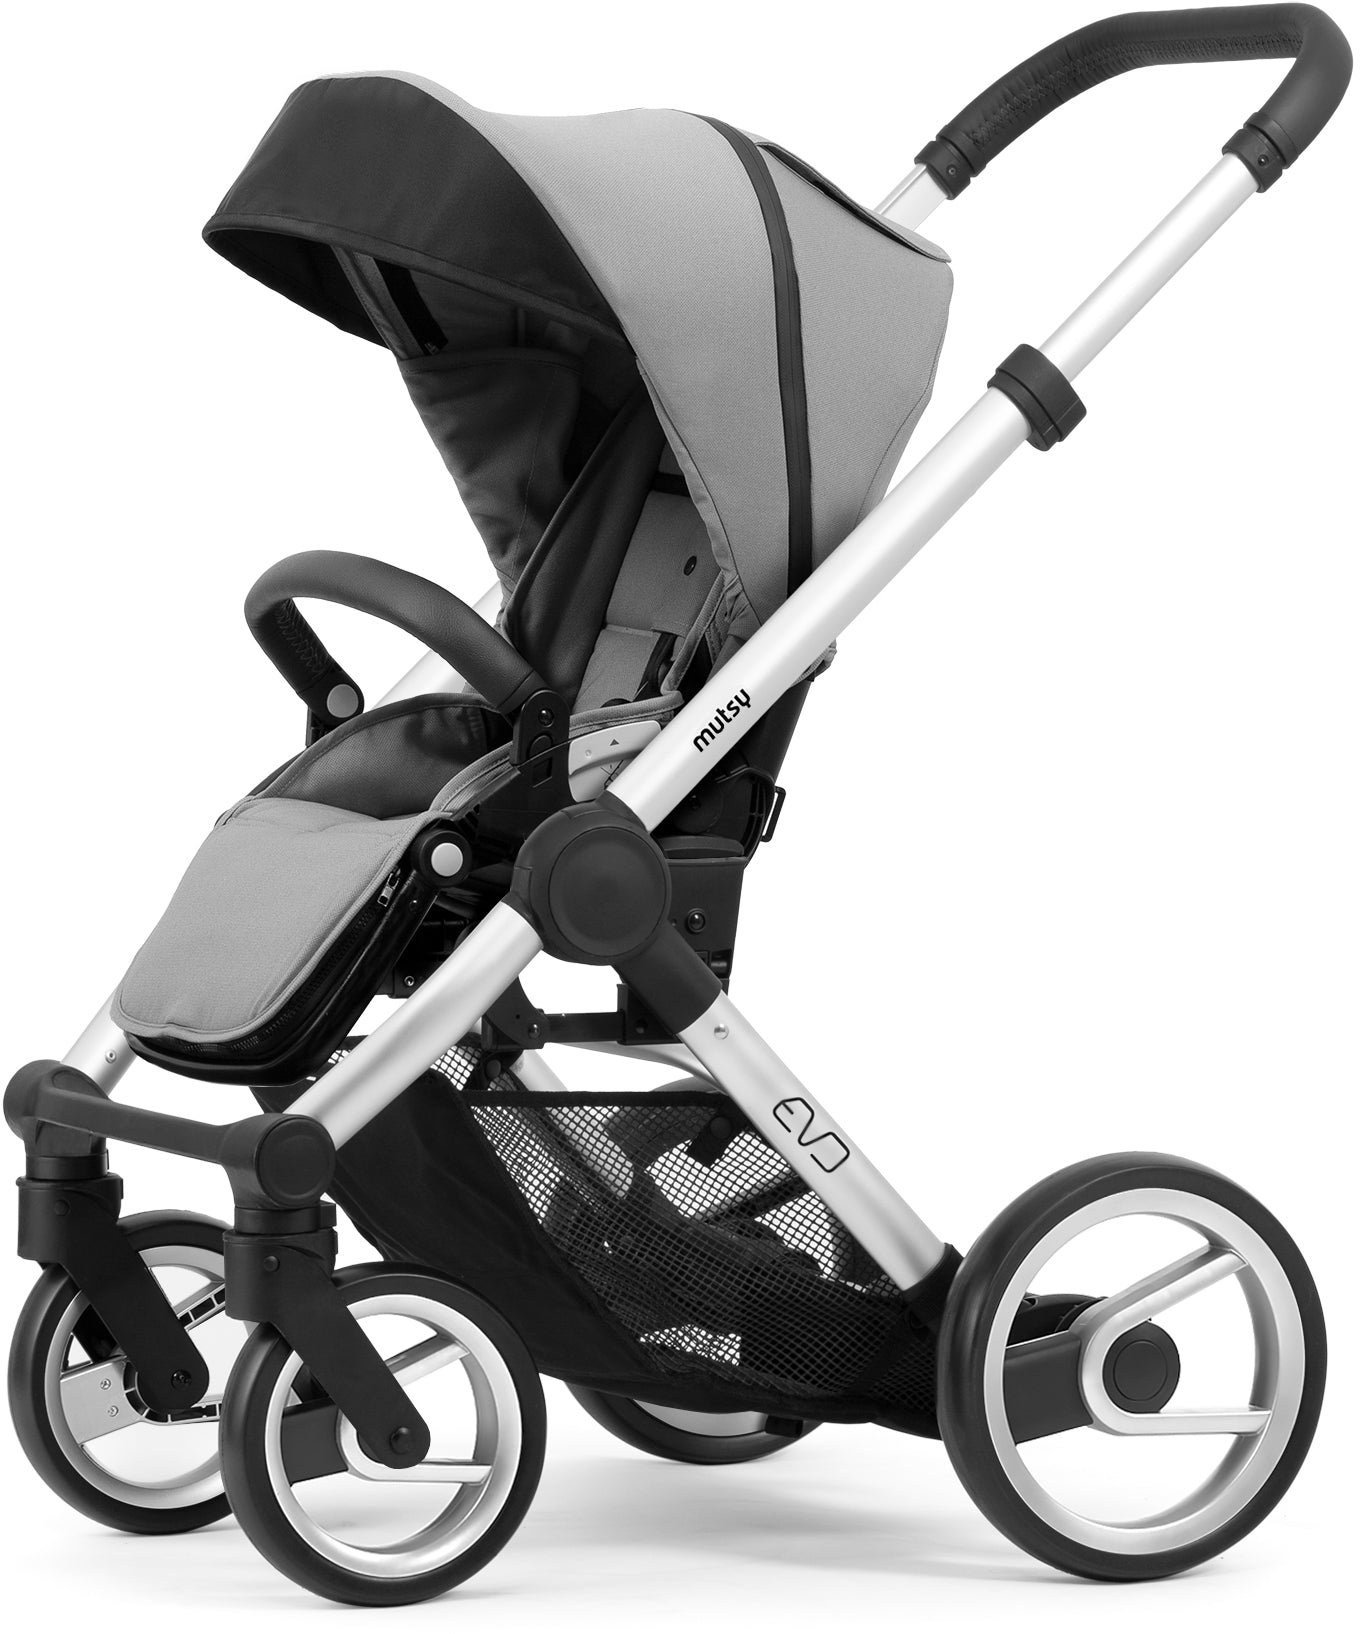 Mutsy Mutsy Evo Pushchair Bold Pebble Grey